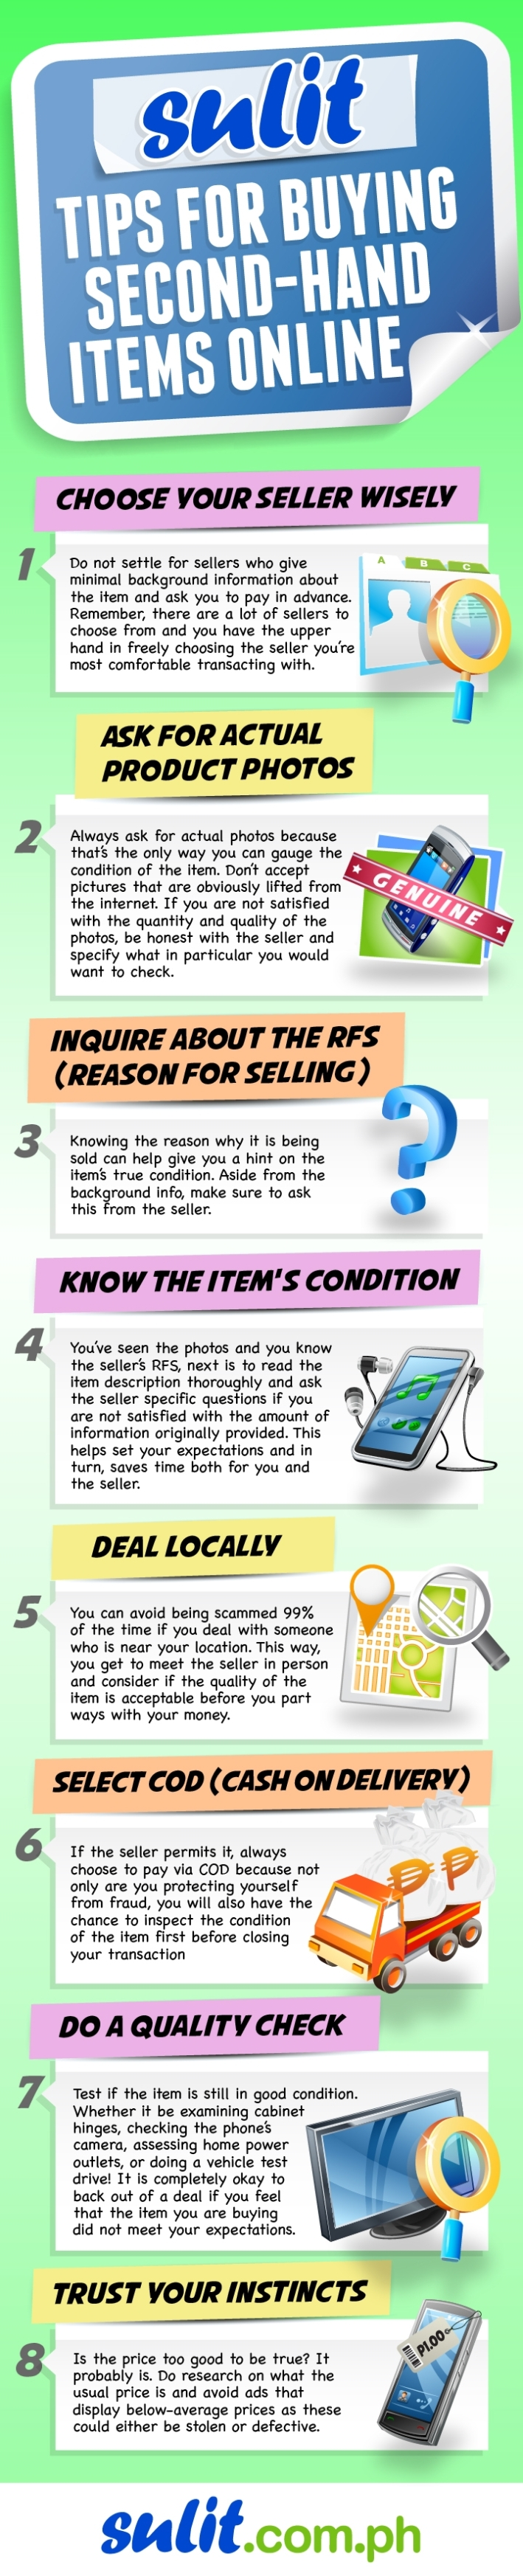 Tips for Buying Second-Hand Items Online